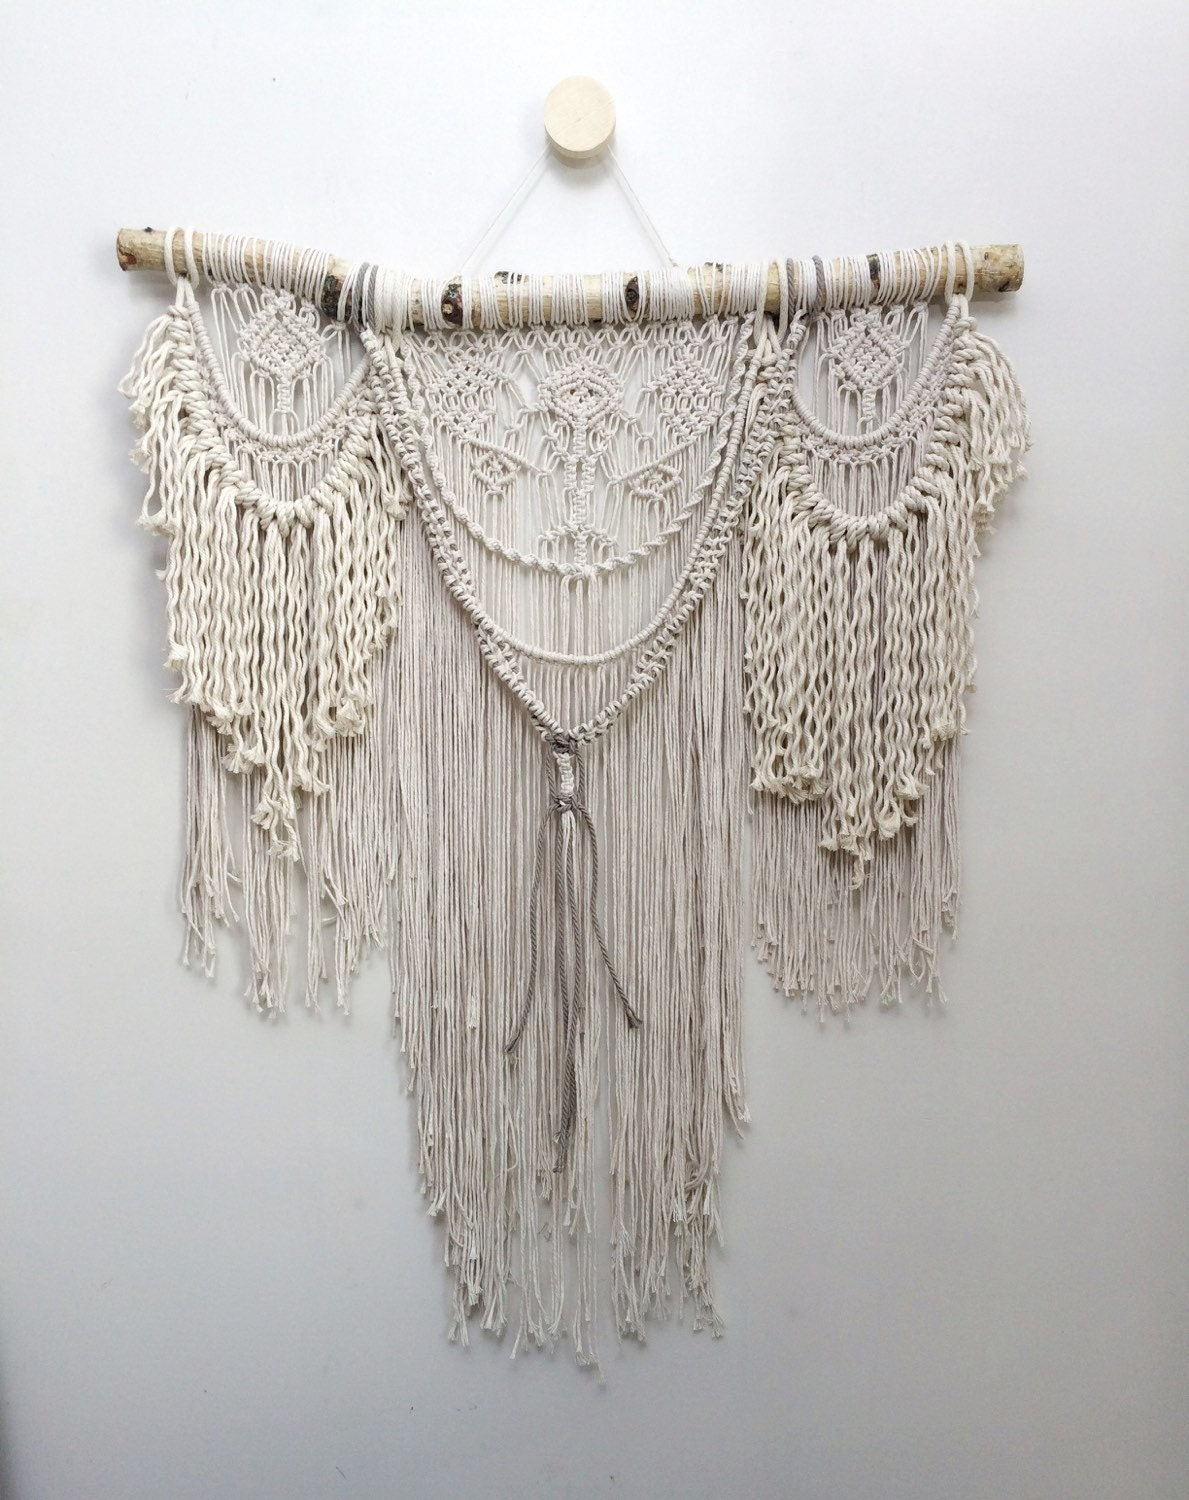 large macrame wall hanging bedroom nursery decor boho 32 large macrame wall hanging bohemian wall by niromastudio